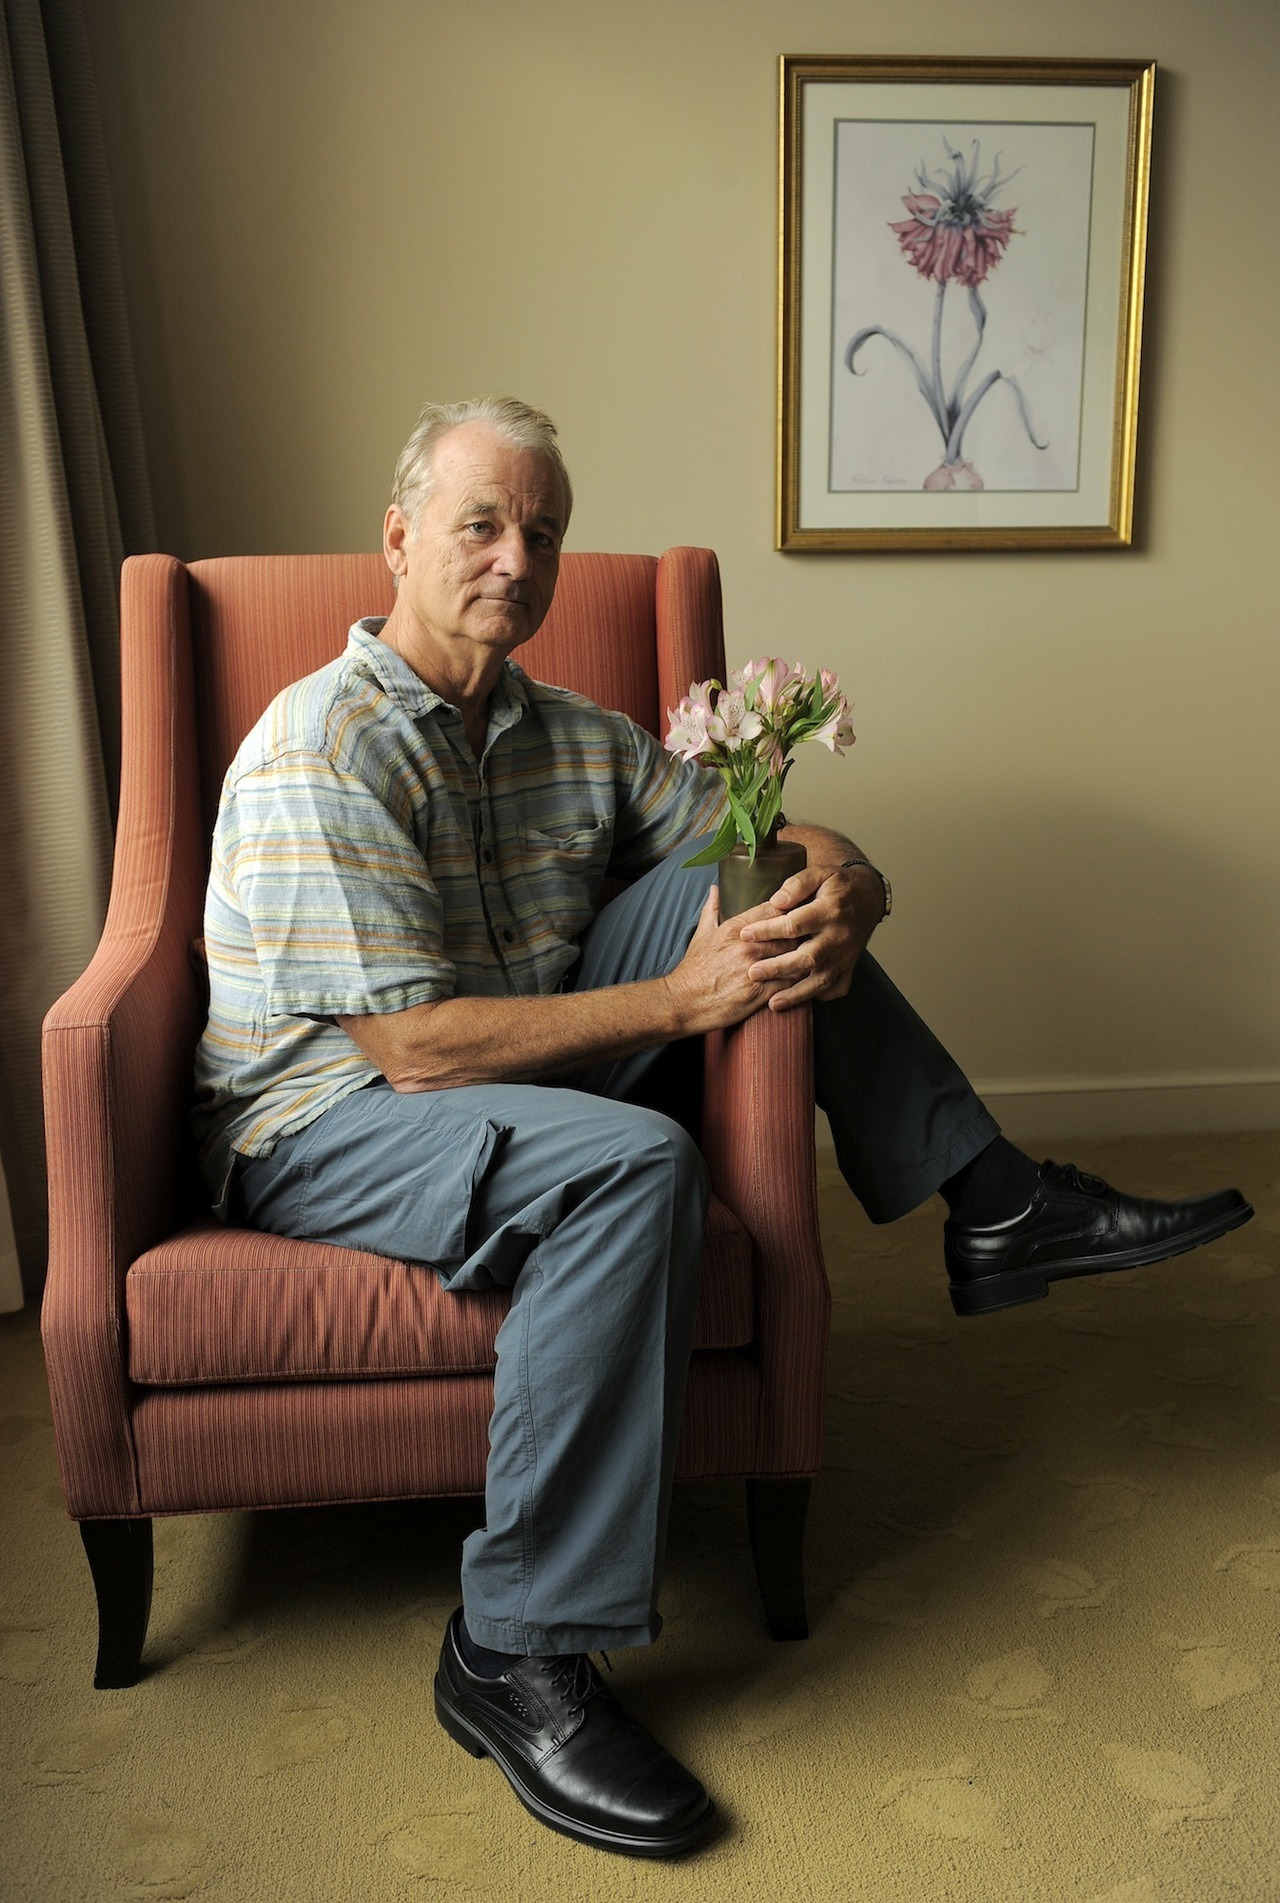 artsexsurvival:  Bill Murray - portraits at the 2012 Toronto Film Festival - September 2012 in Toronto, Canada.